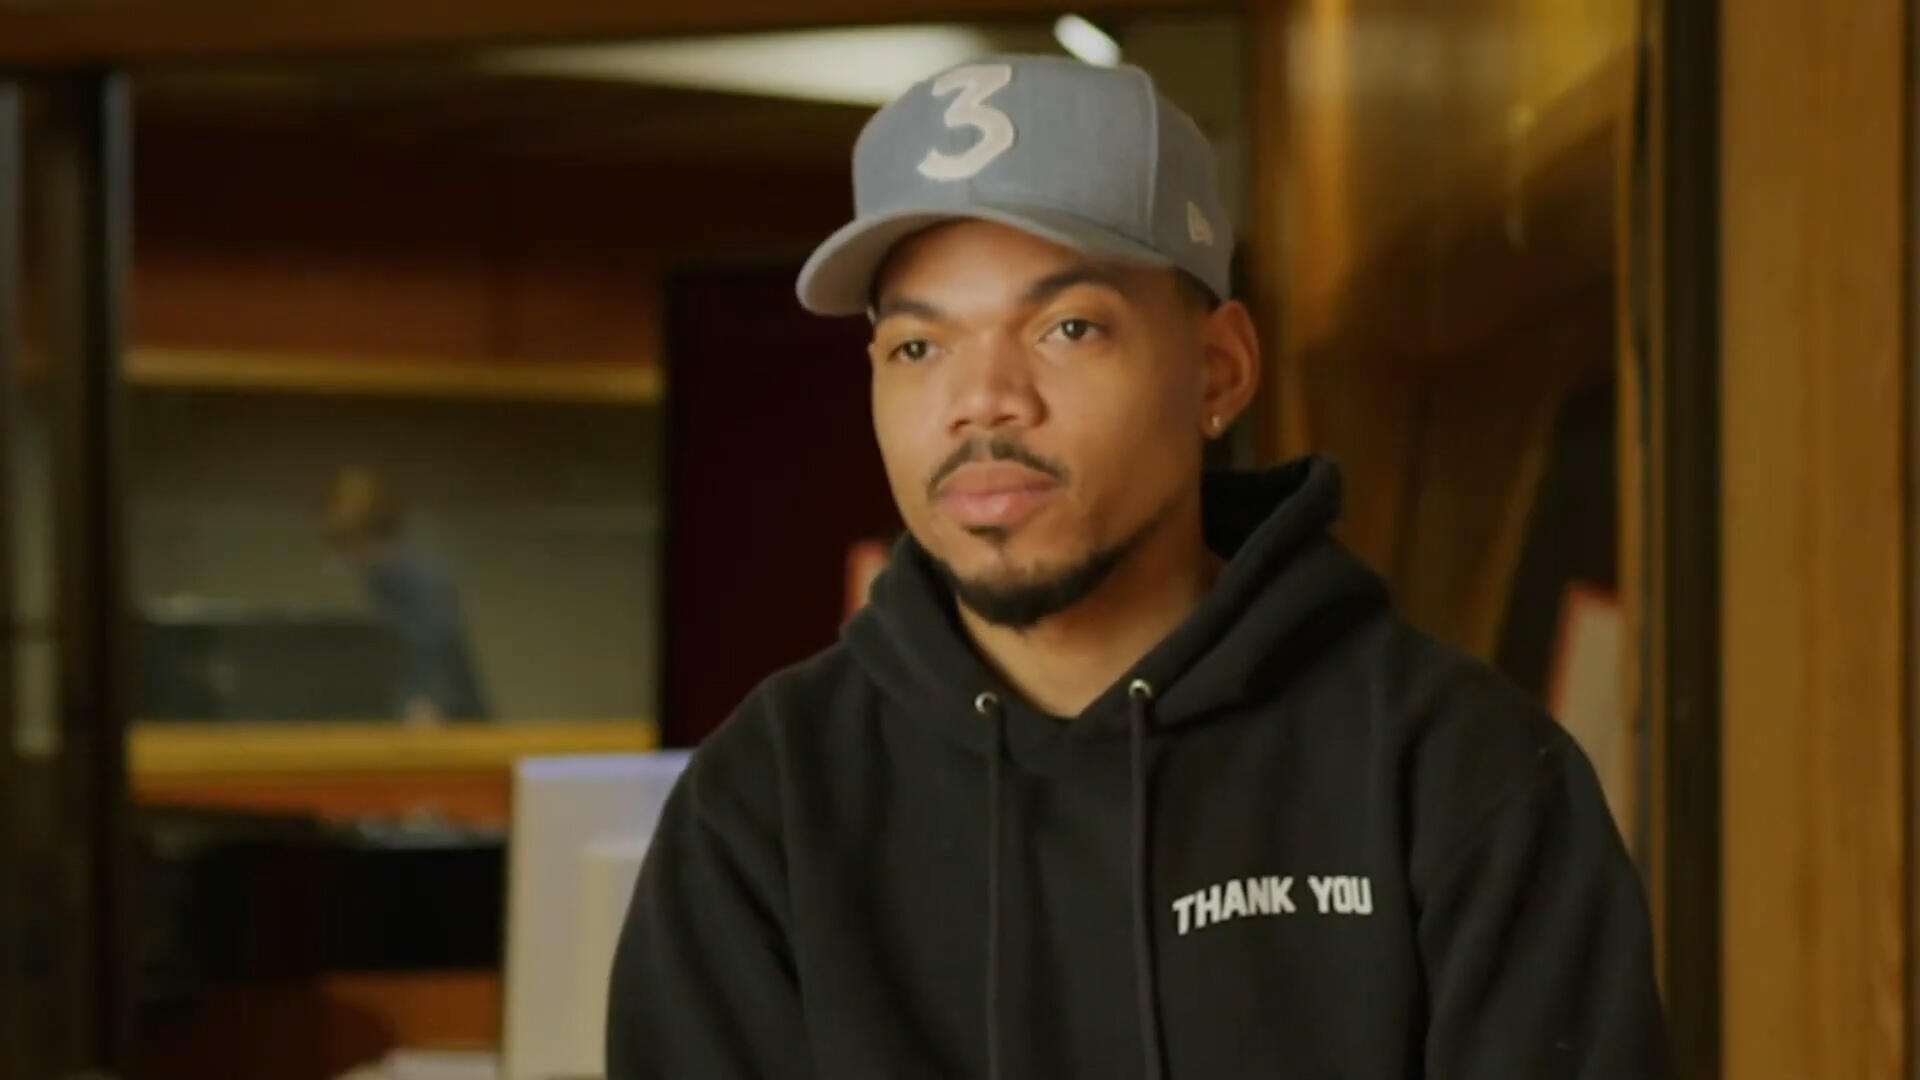 Video: Chance the Rapper appears at Intel's CES 2021 presentation, speaks on education